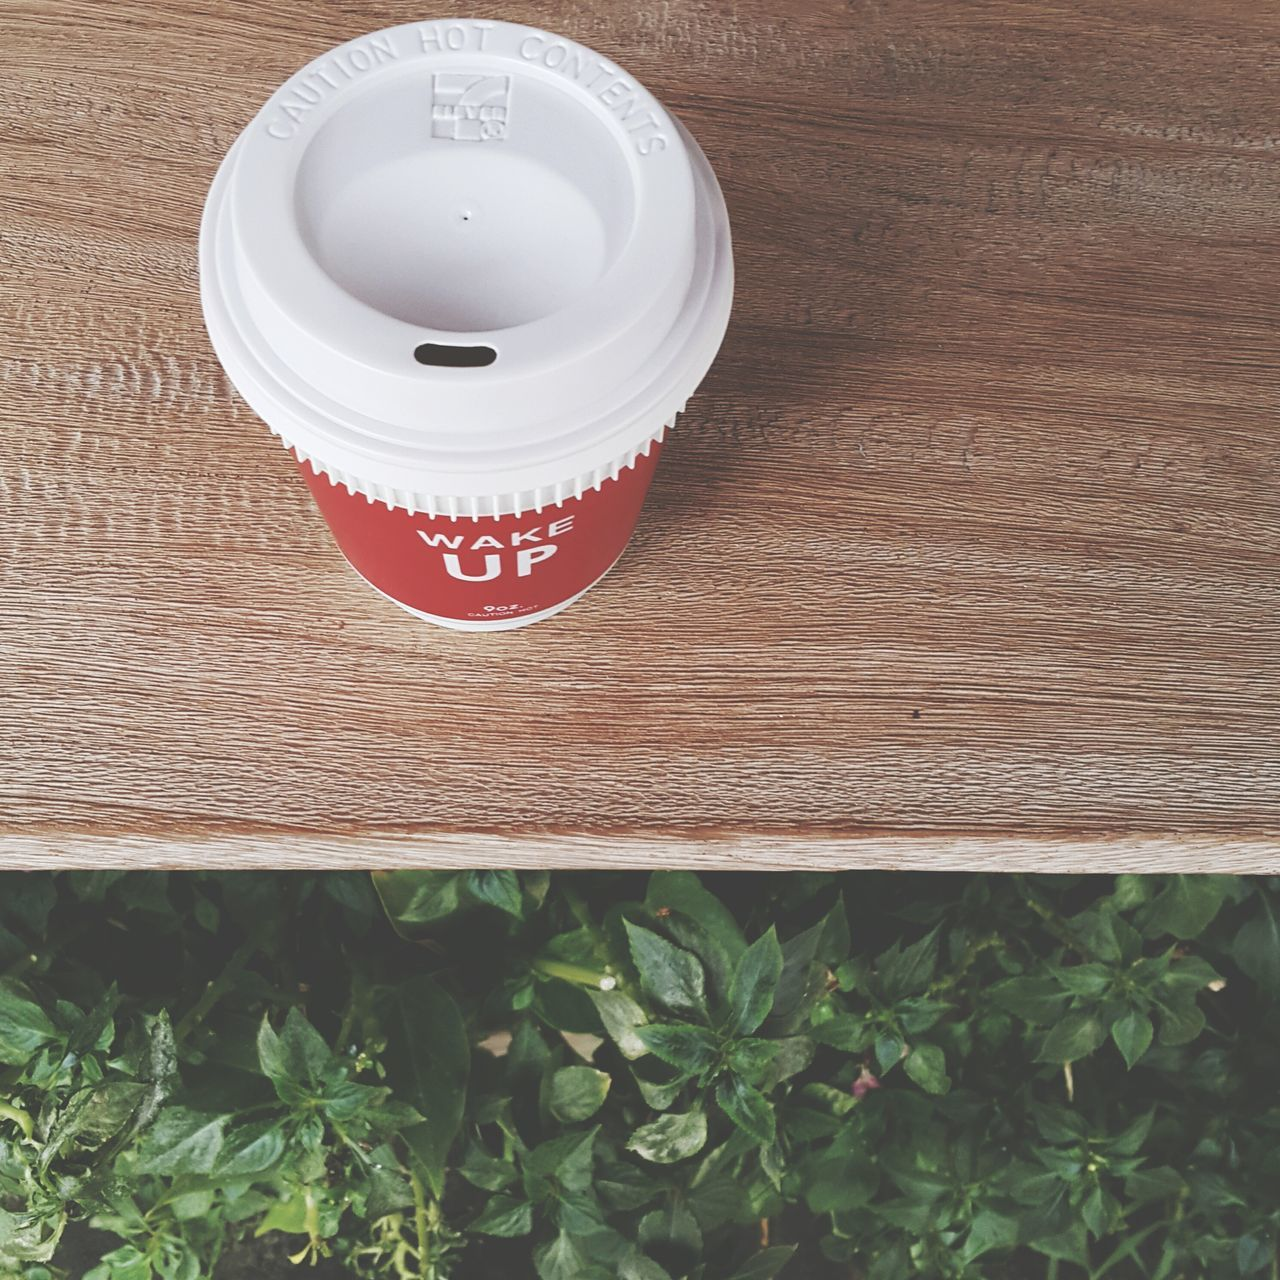 High Angle View Of Disposable Coffee Cup On Table